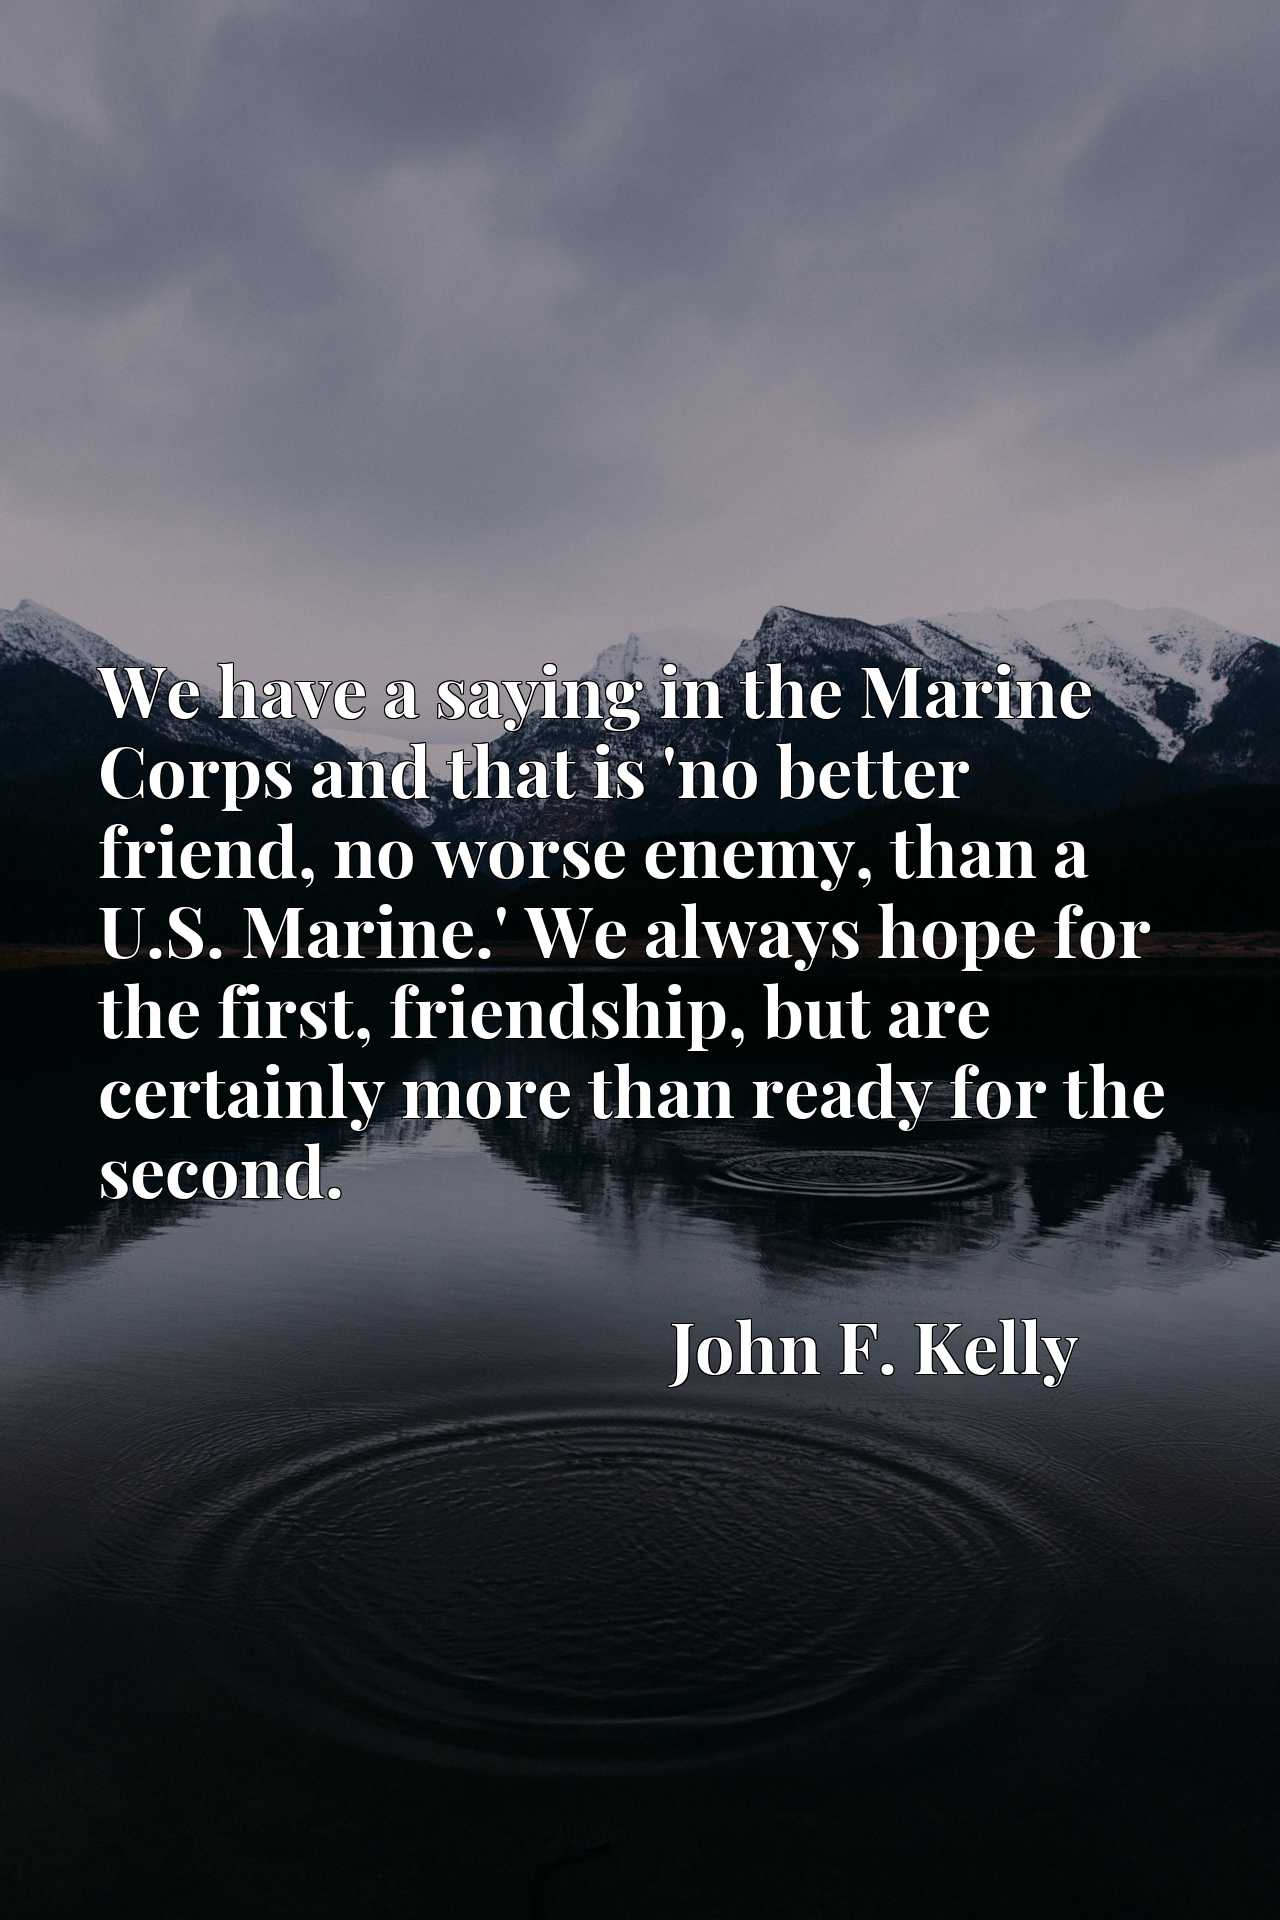 We have a saying in the Marine Corps and that is 'no better friend, no worse enemy, than a U.S. Marine.' We always hope for the first, friendship, but are certainly more than ready for the second.